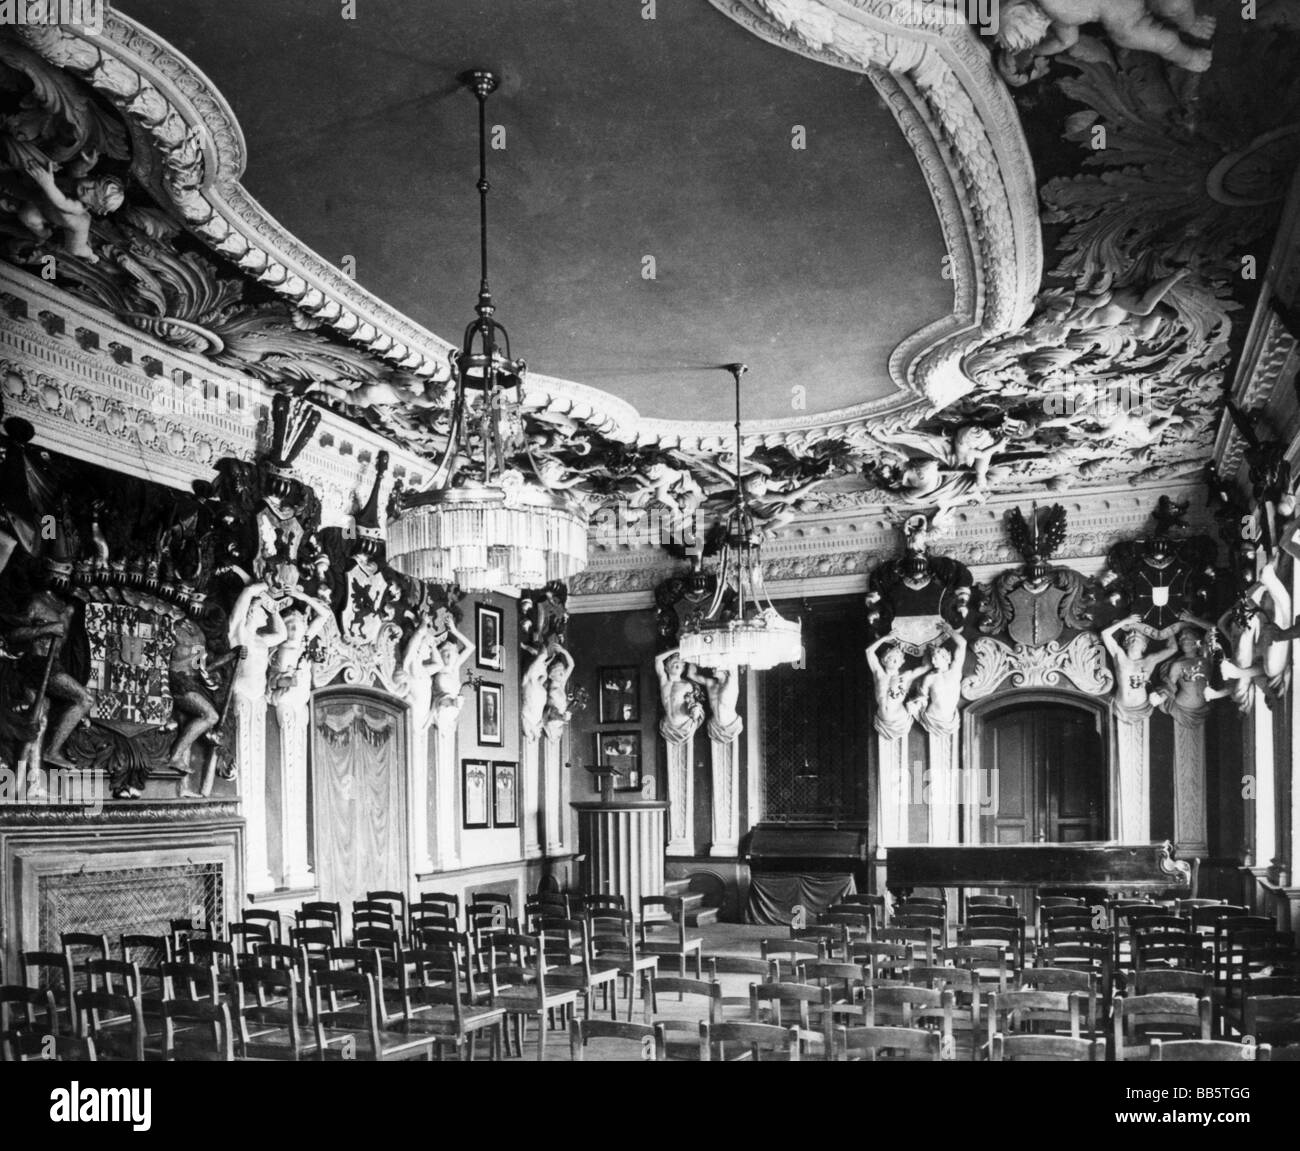 castle interior black and white stock photos & images - alamy